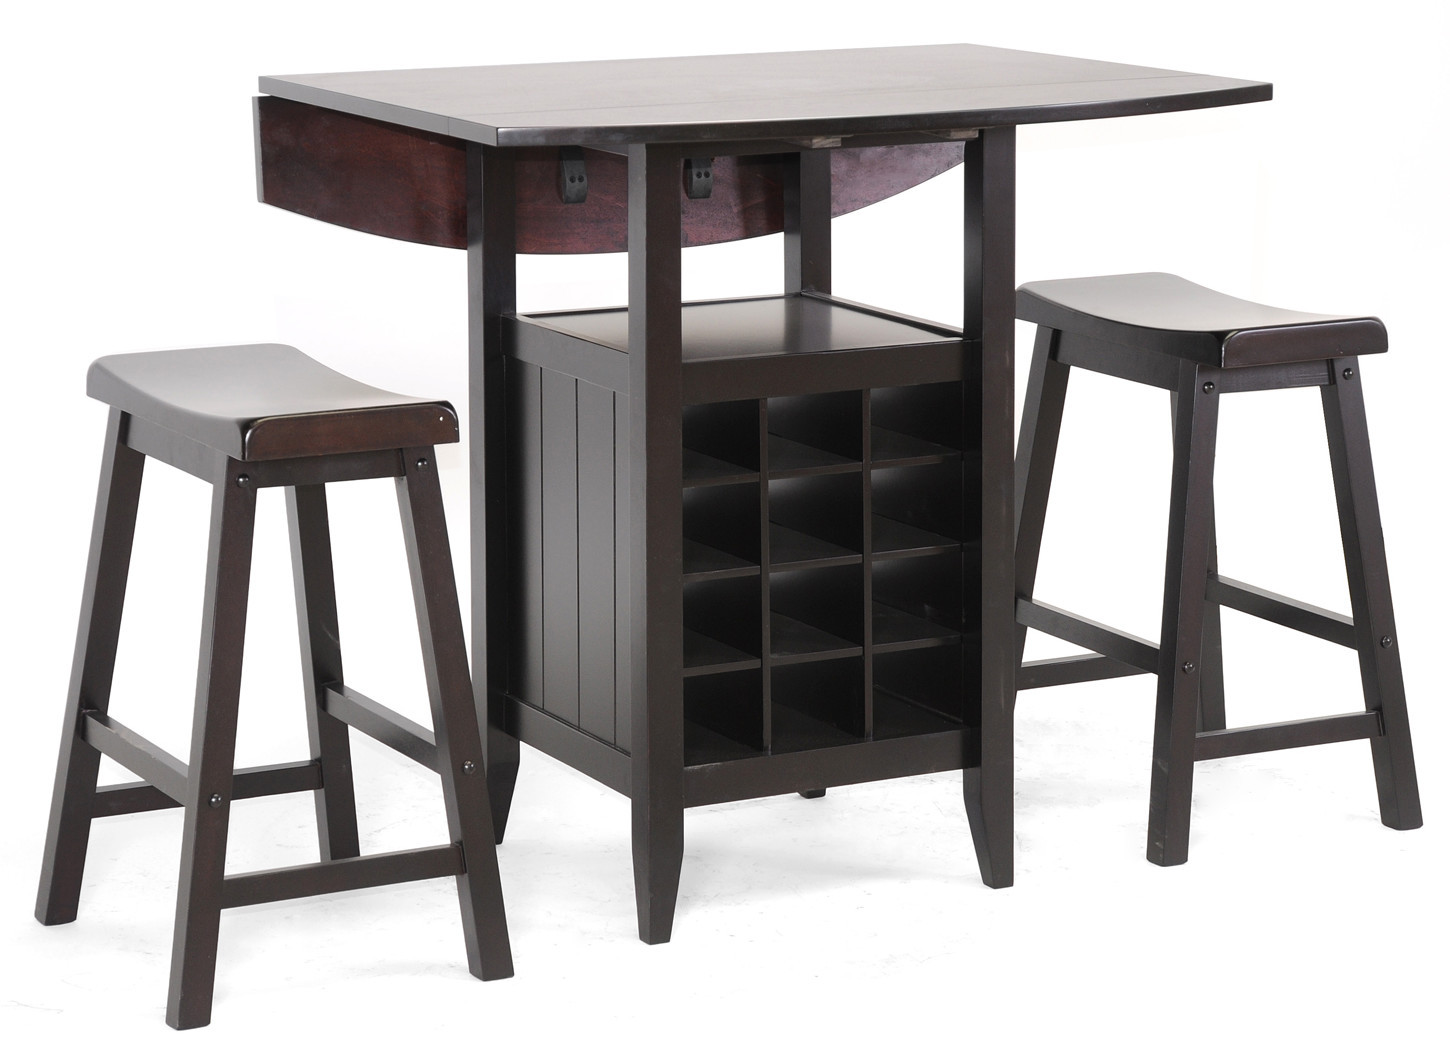 Superb img of Wooden Pub Table Set 3 Piece Saddle Bar Stools Dining Furniture Wine  with #594C4E color and 1450x1050 pixels